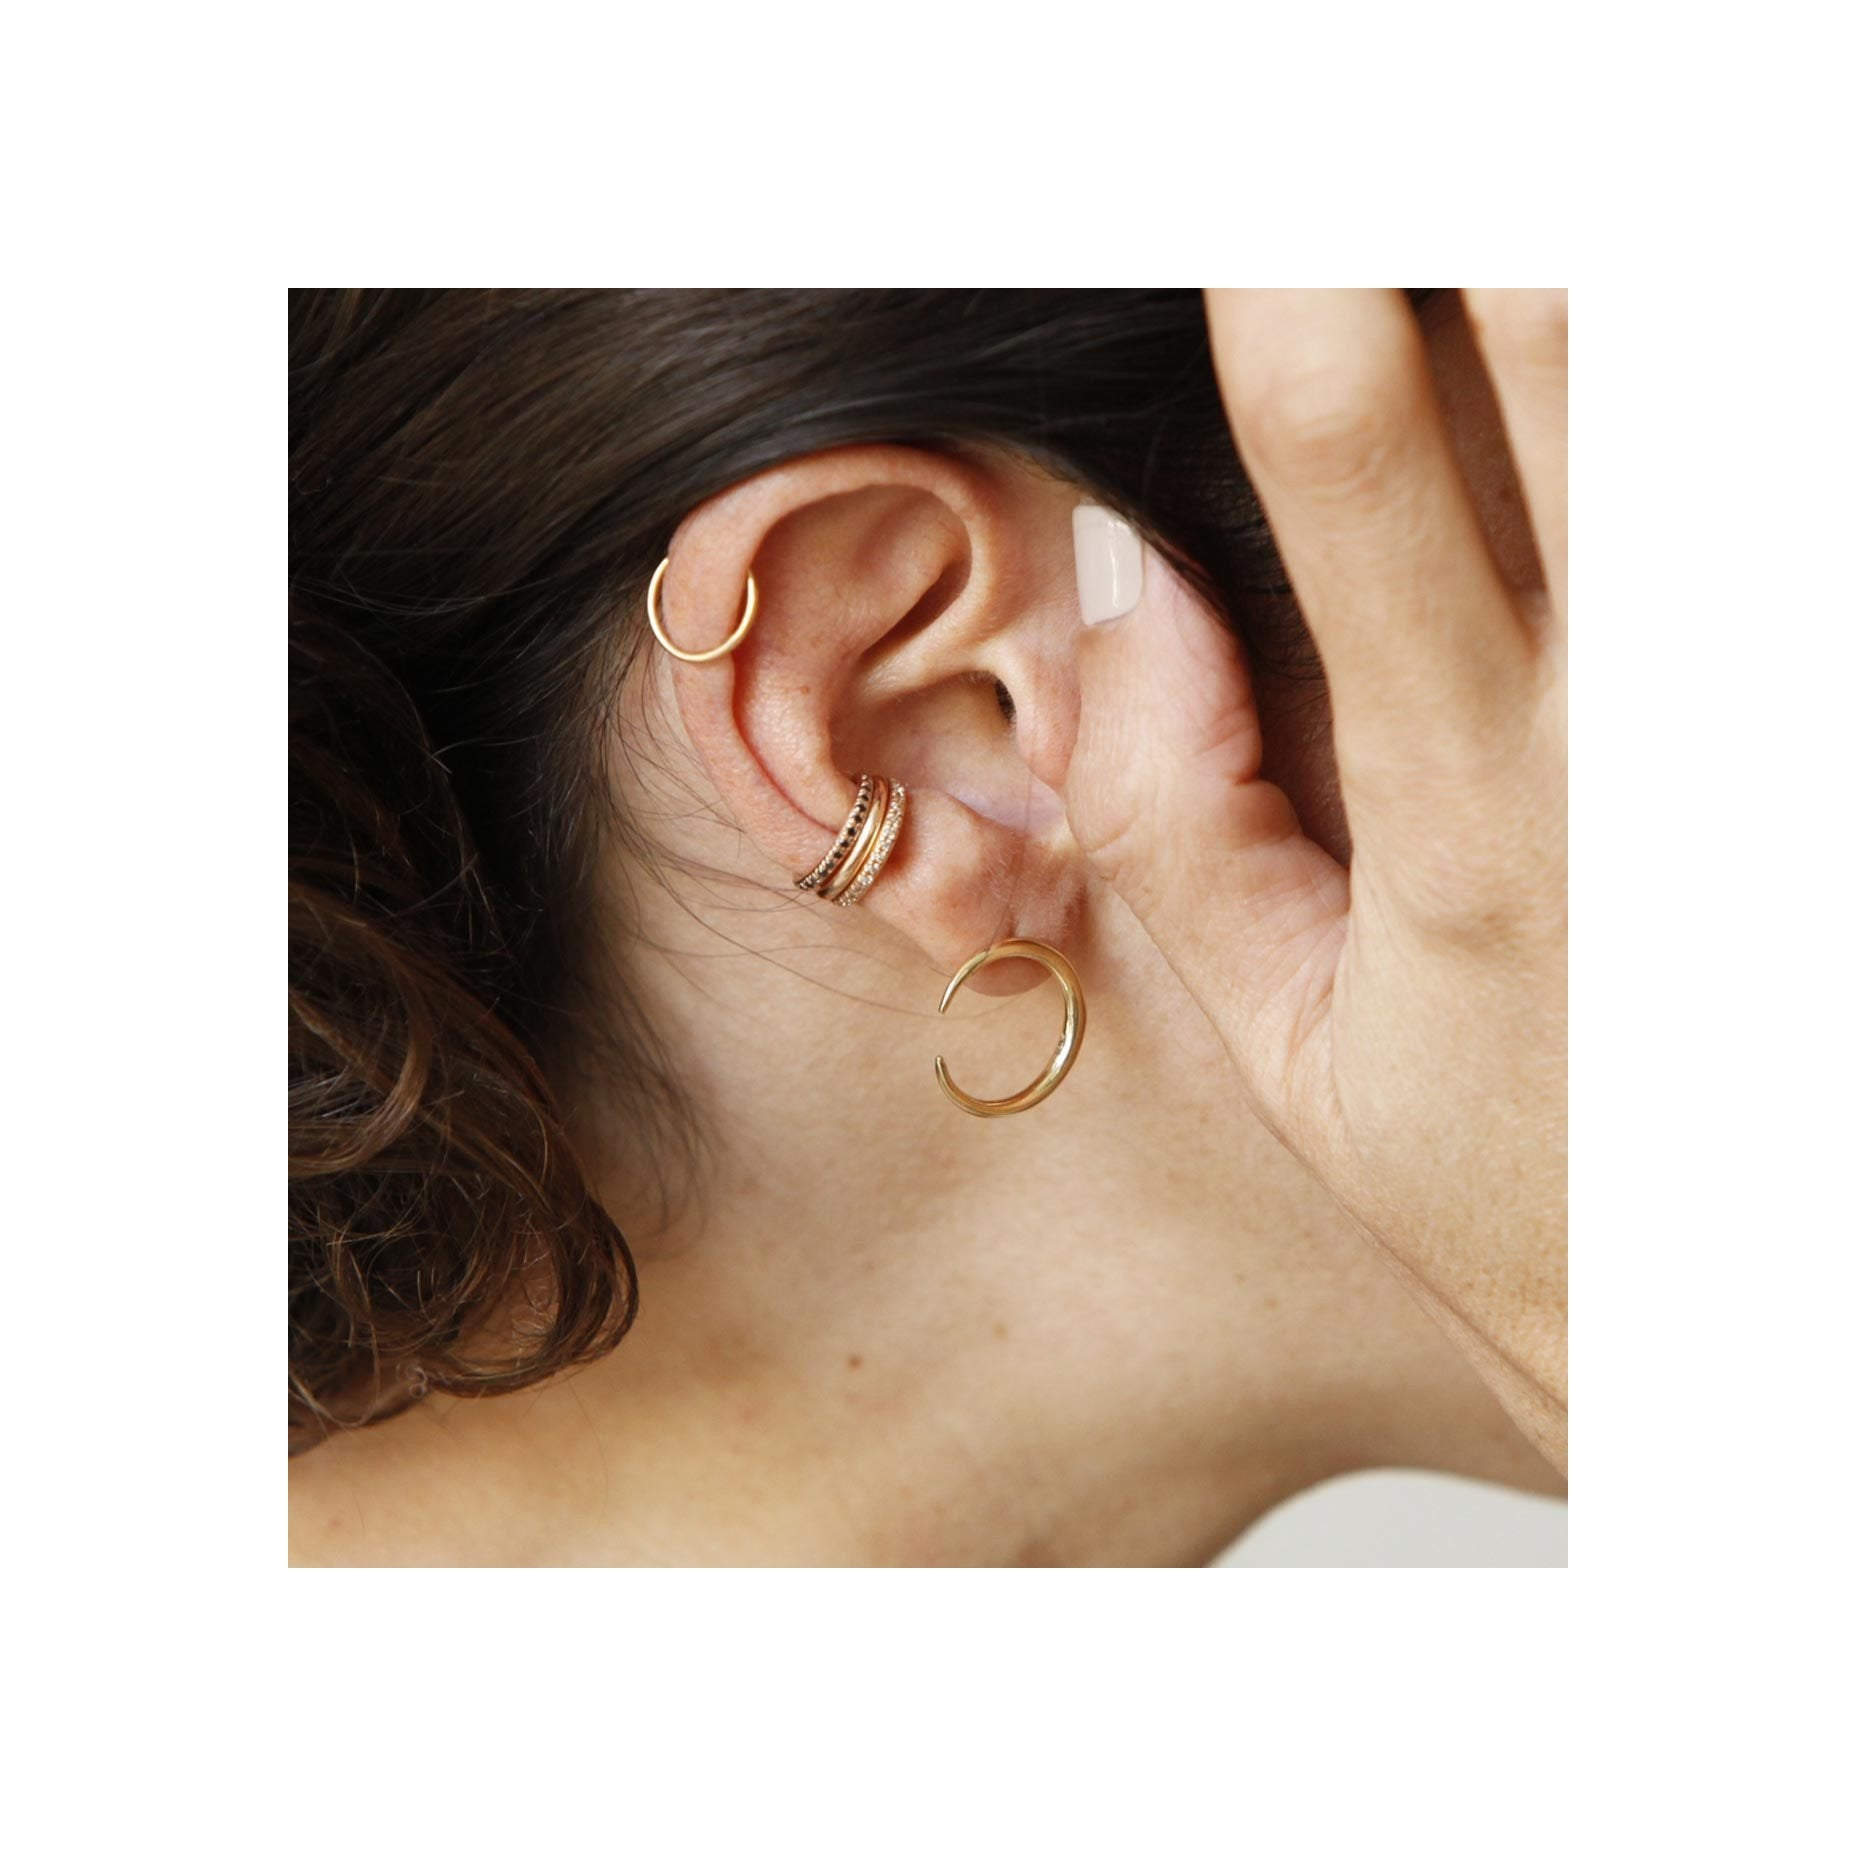 Reloaded Ear Cuff - Gabriela Artigas